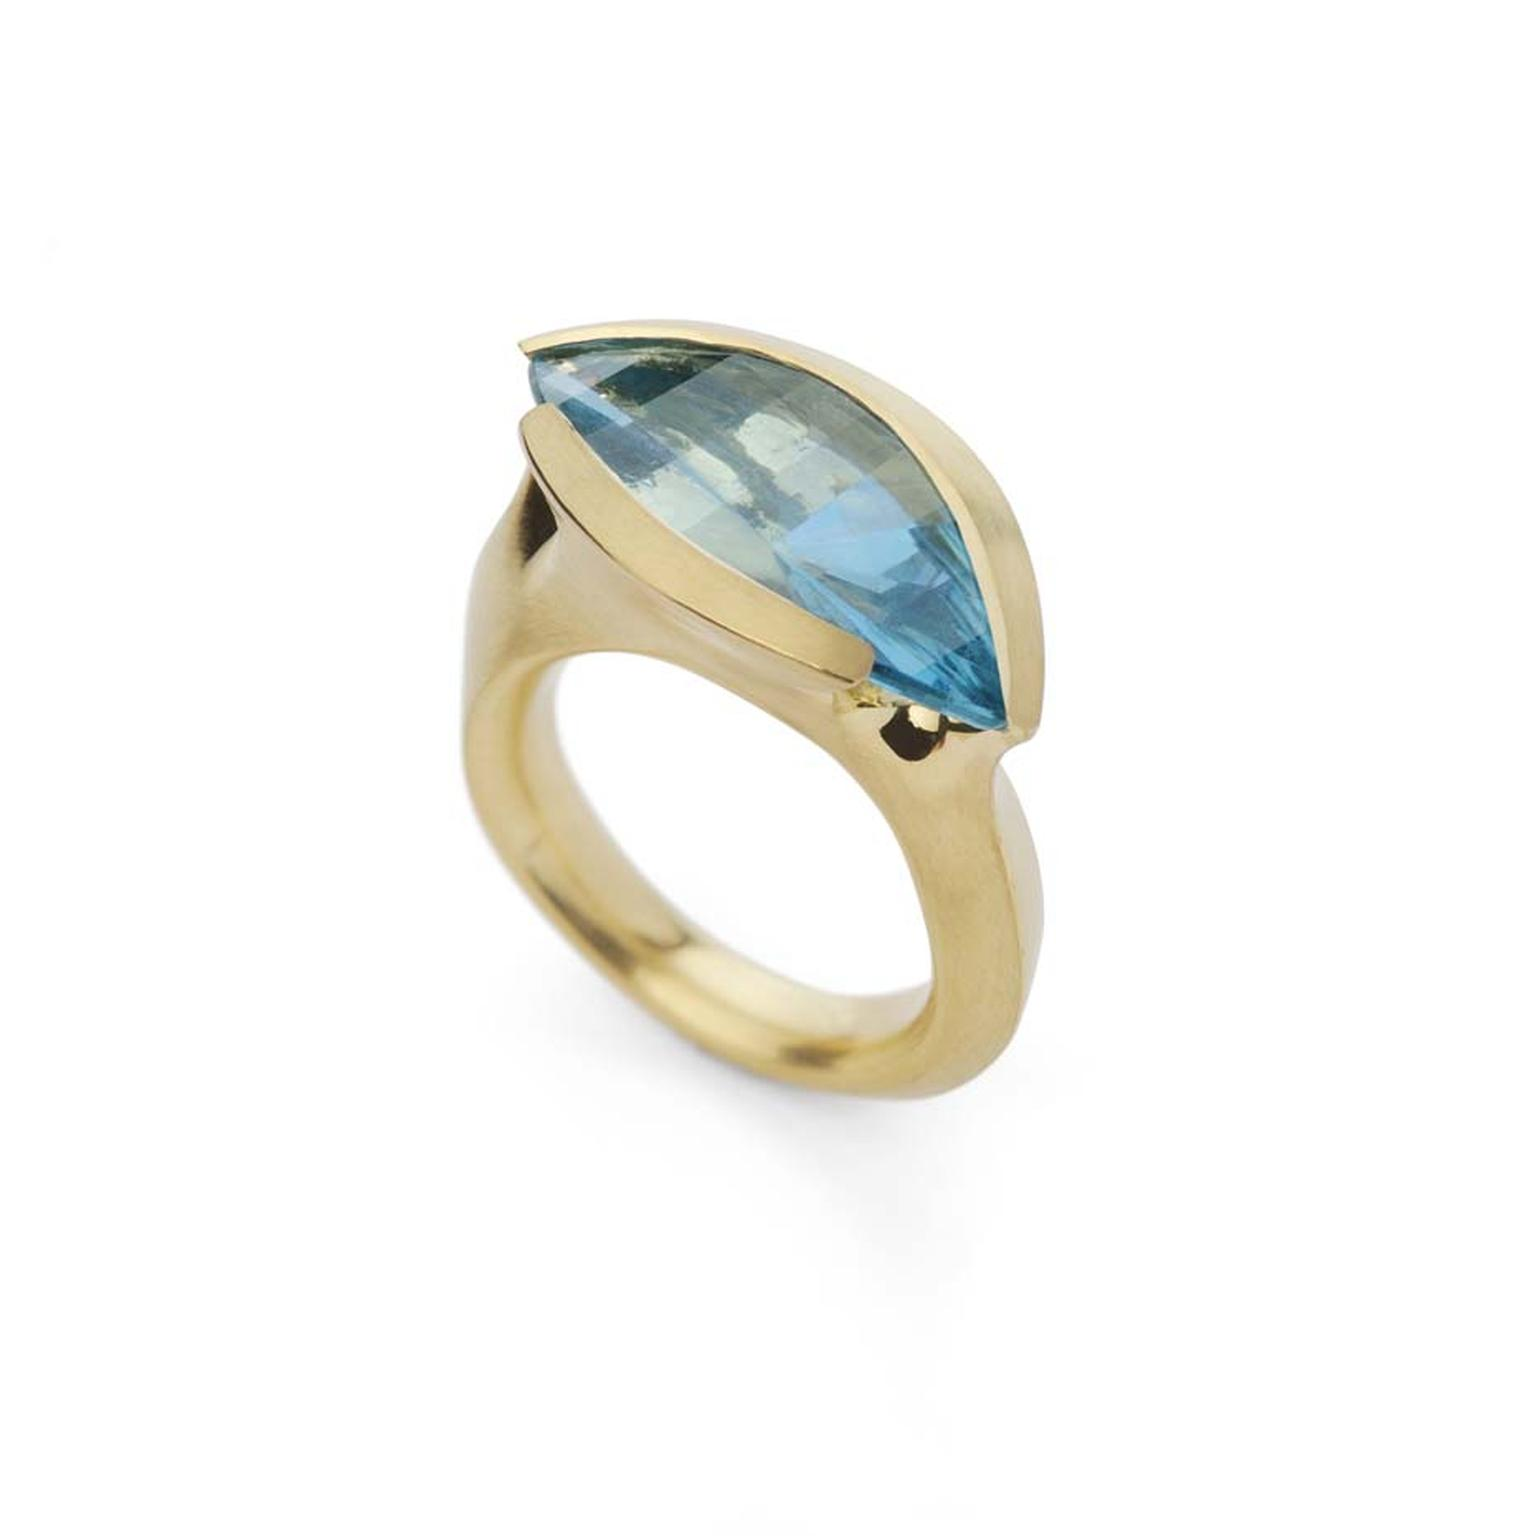 McCaul Goldsmiths Carve collection ring with a marquise-cut aquamarine set in gold.